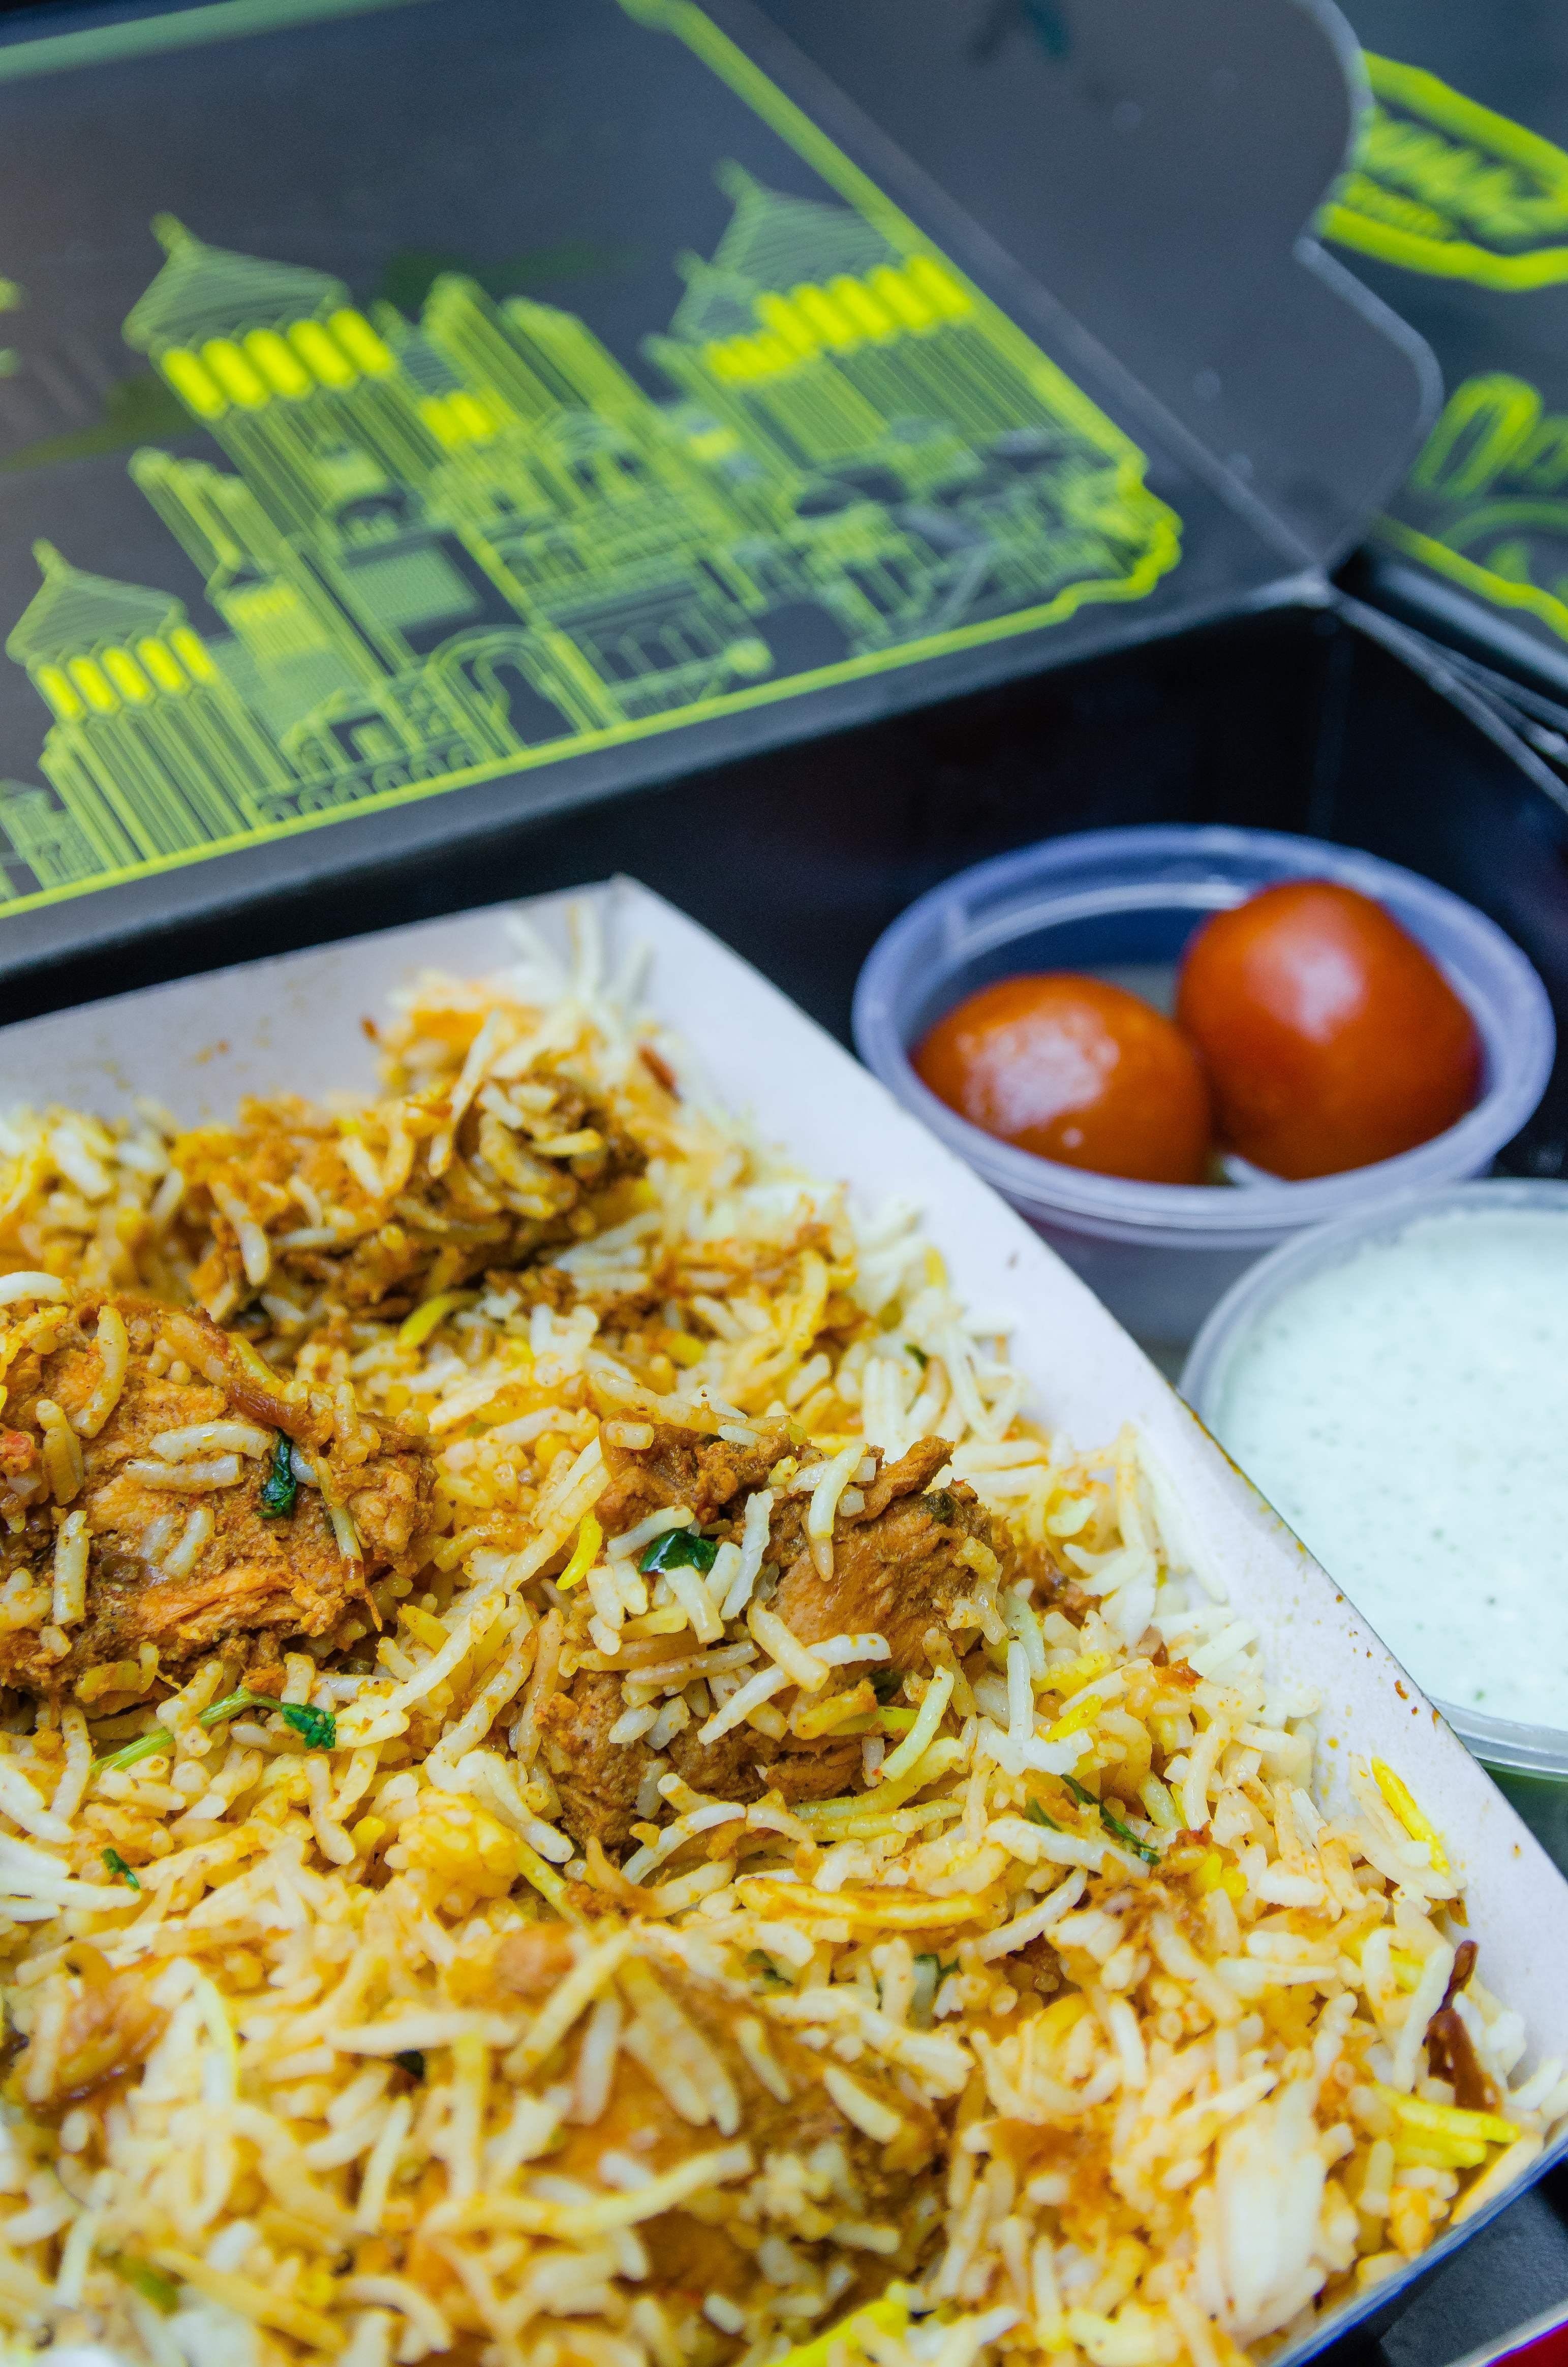 Dish,Food,Cuisine,Ingredient,Biryani,Kabsa,Hyderabadi biriyani,Produce,Indian cuisine,Recipe